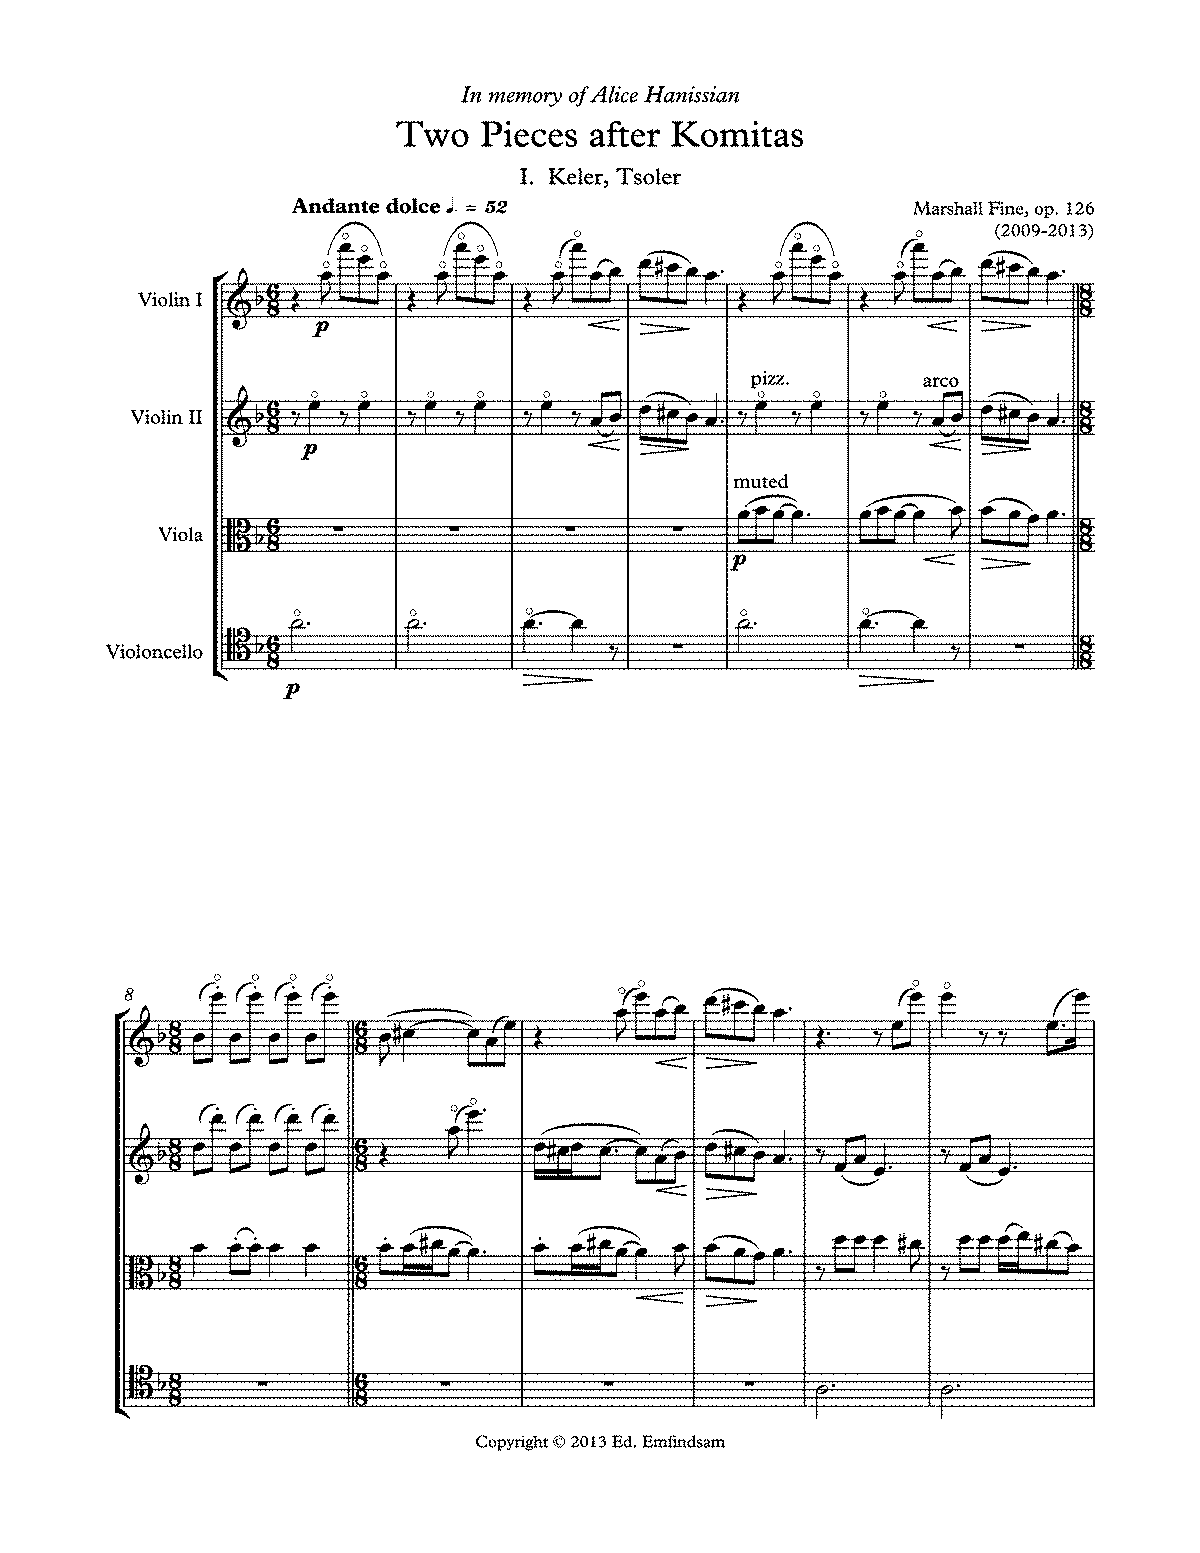 PMLP550068-Two Pieces after Komitas - score and parts.pdf